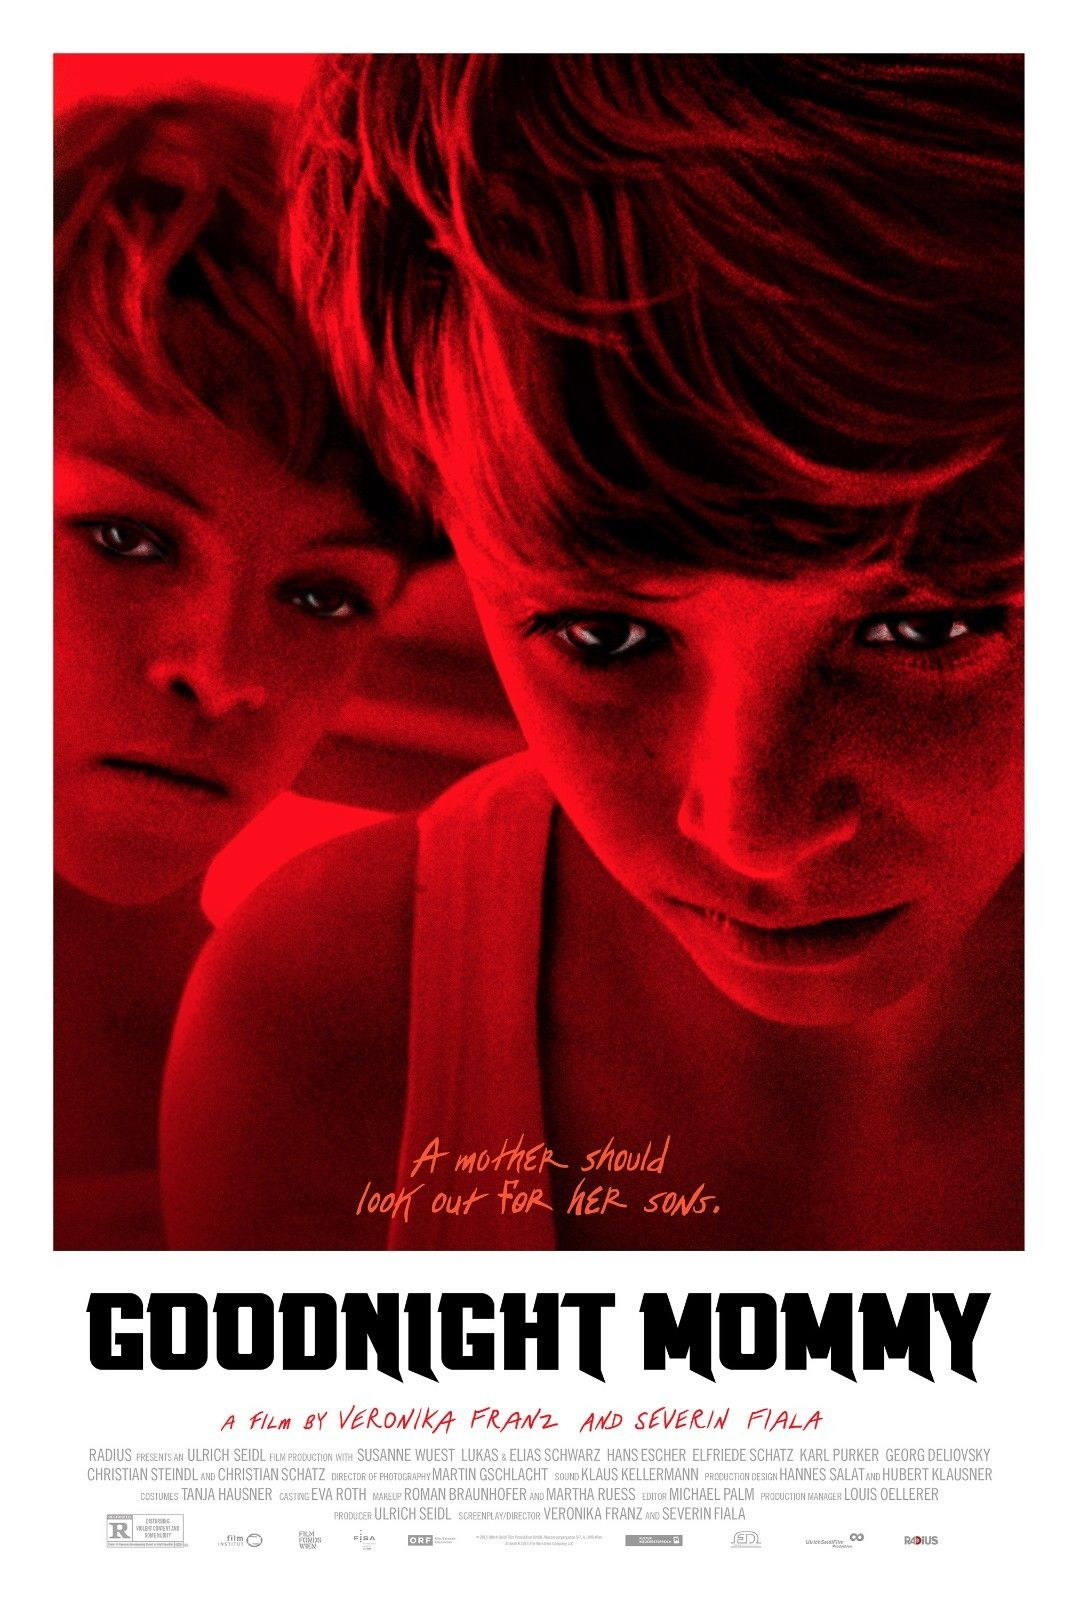 73163-GOODNIGHT-MOMMY-Movie-Horror-2015-Wall-Print-Poster-Affiche